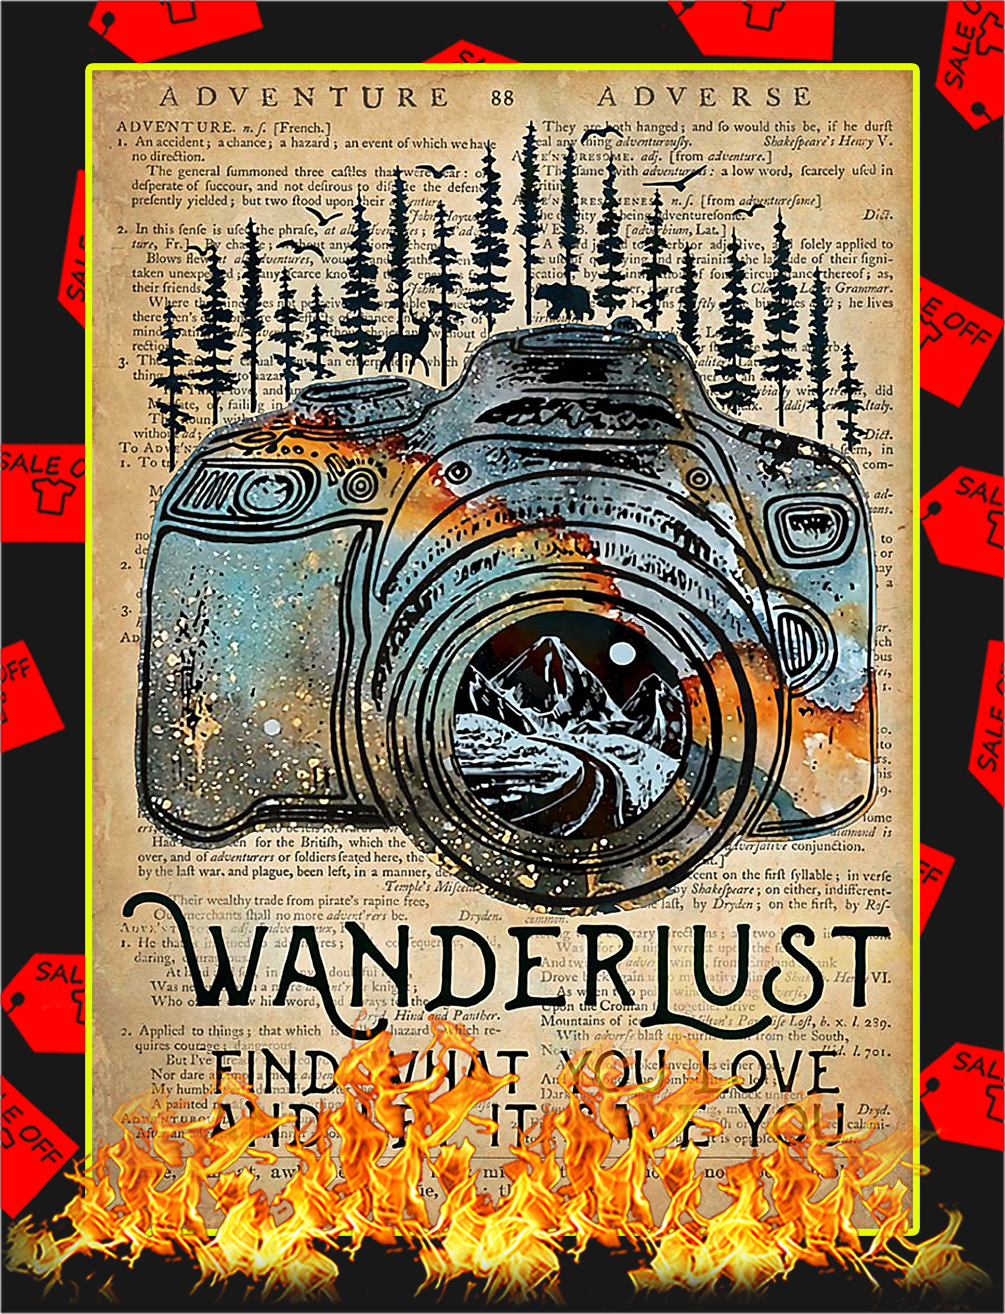 Camera Wanderlust find what you love poster - A4